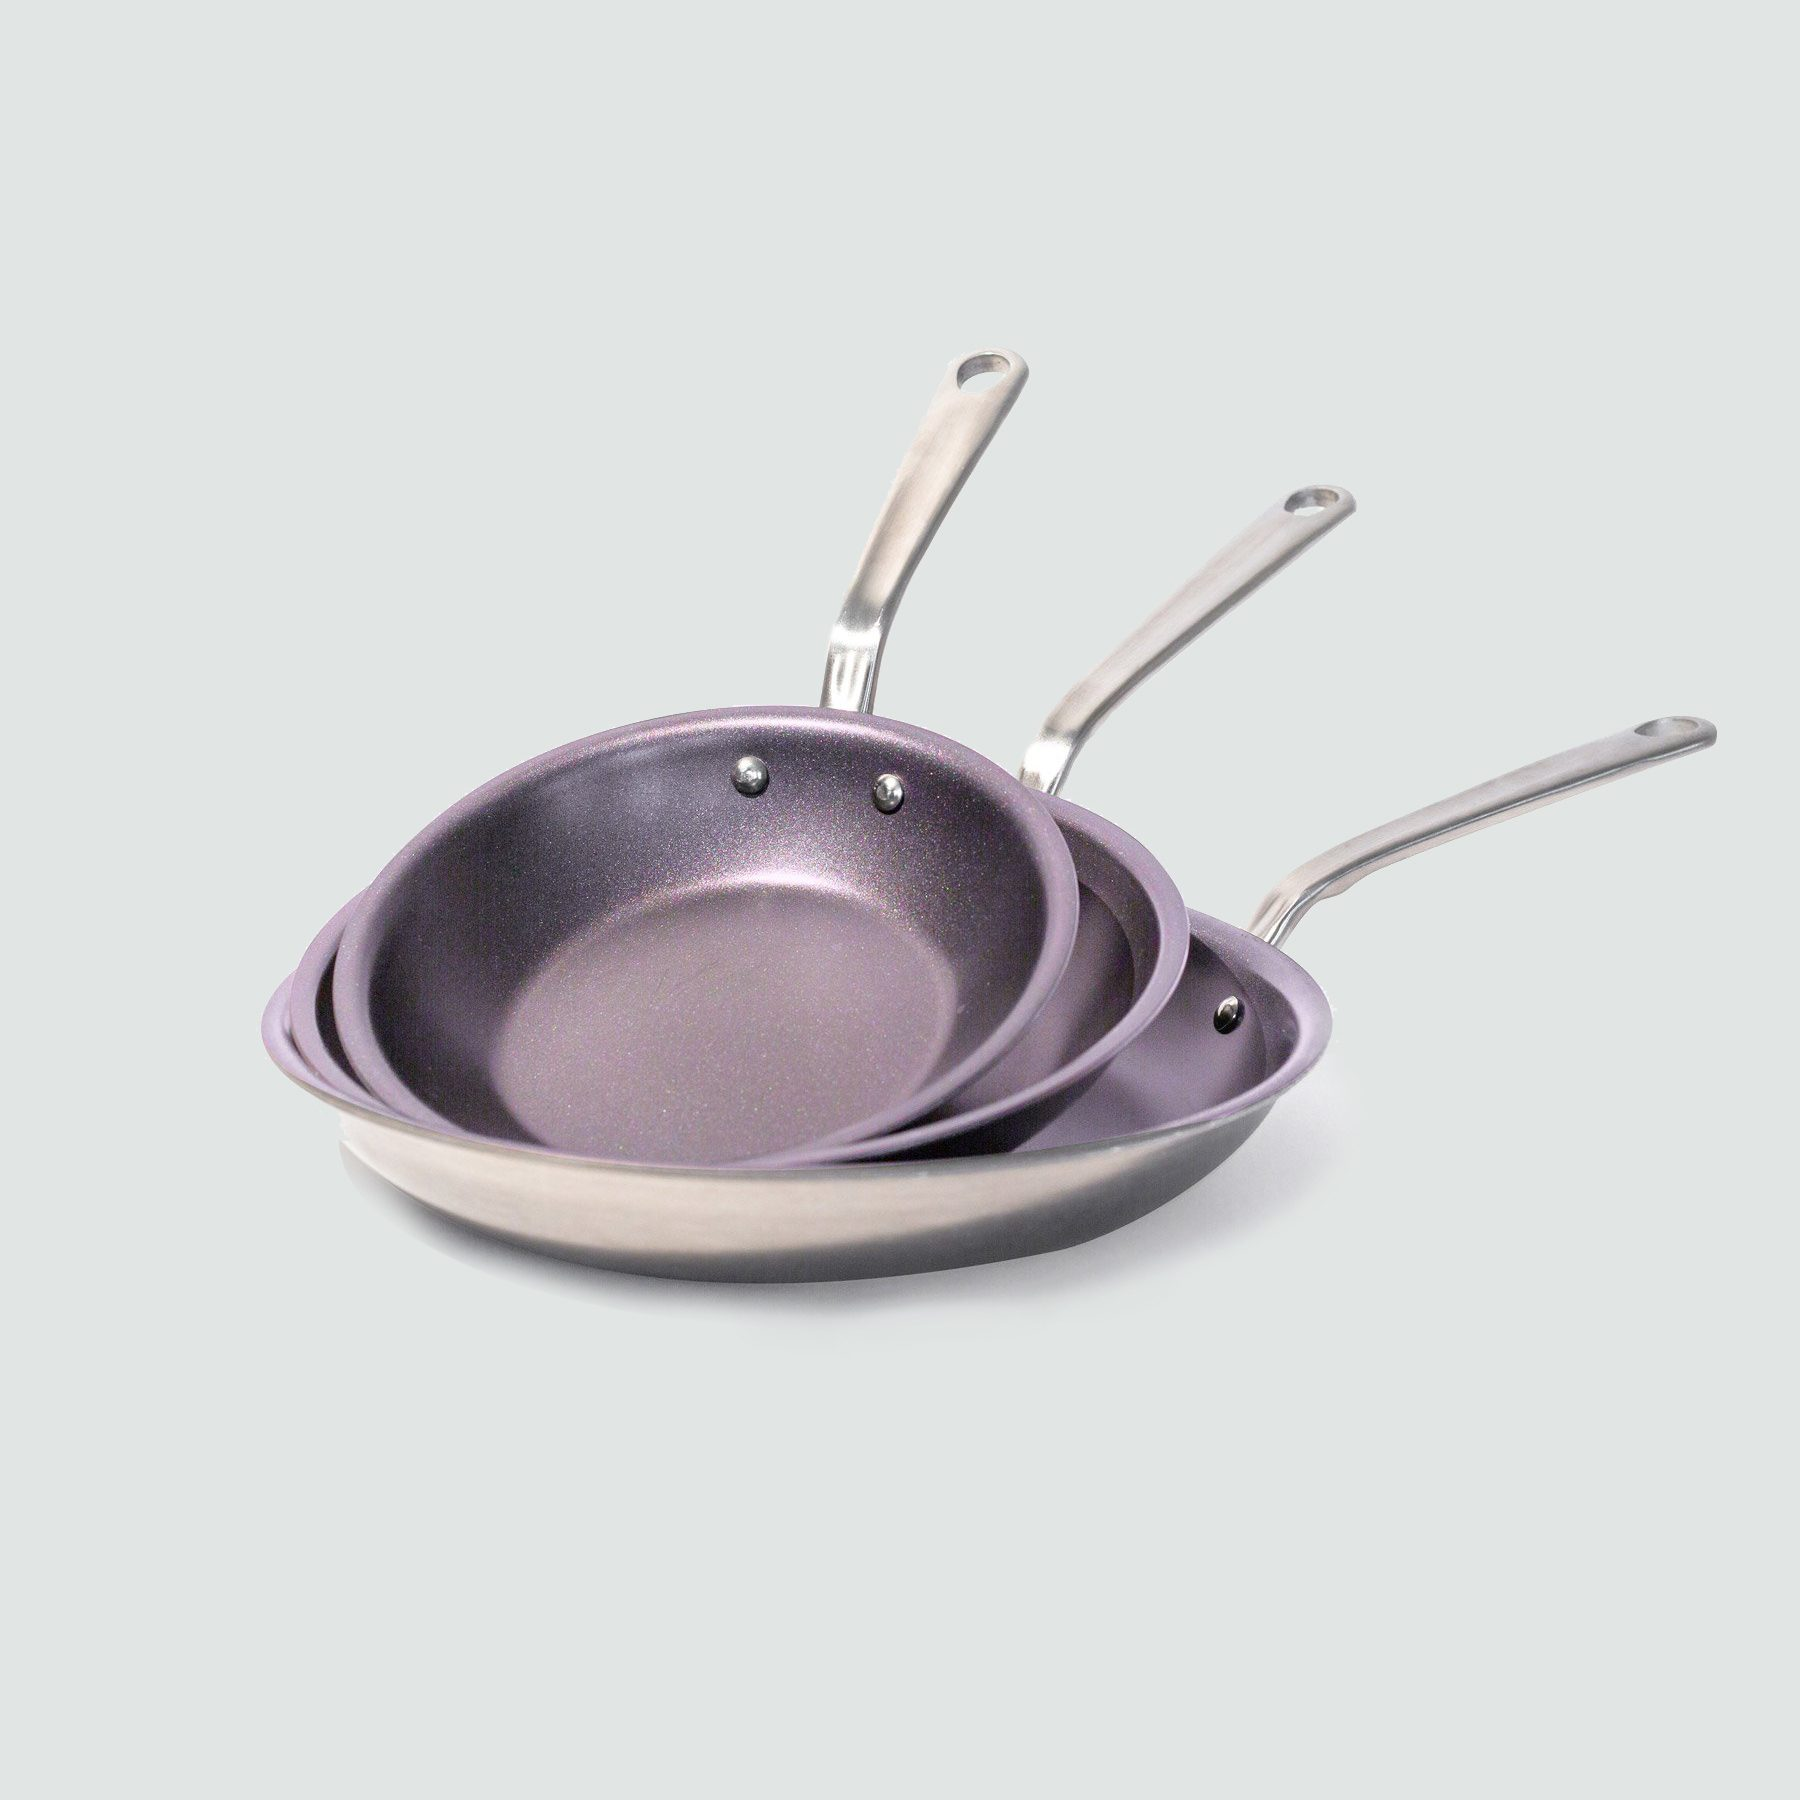 Purple Non-Stick Frying Pan for Cystic Fibrosis Awareness